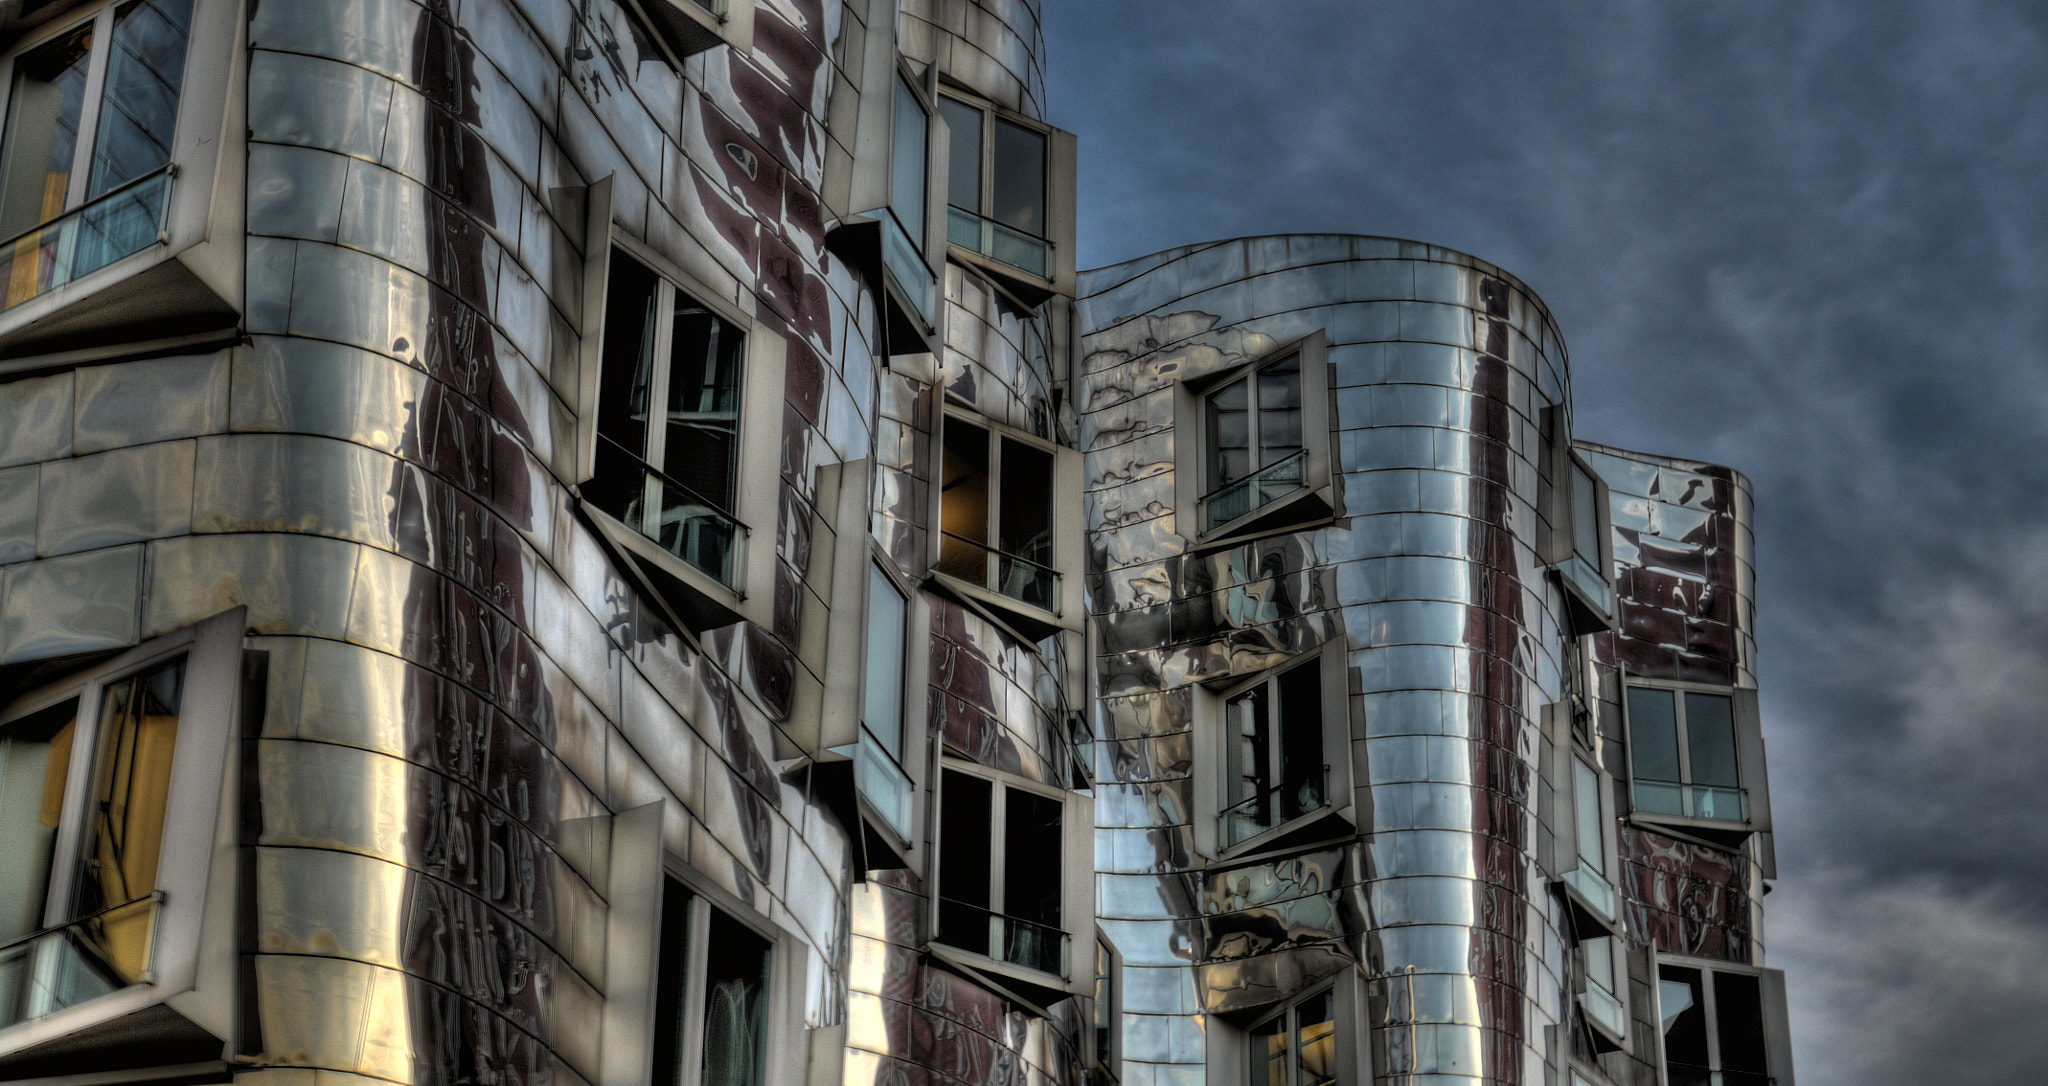 Photograph Gehry building by Michael Müller on 500px